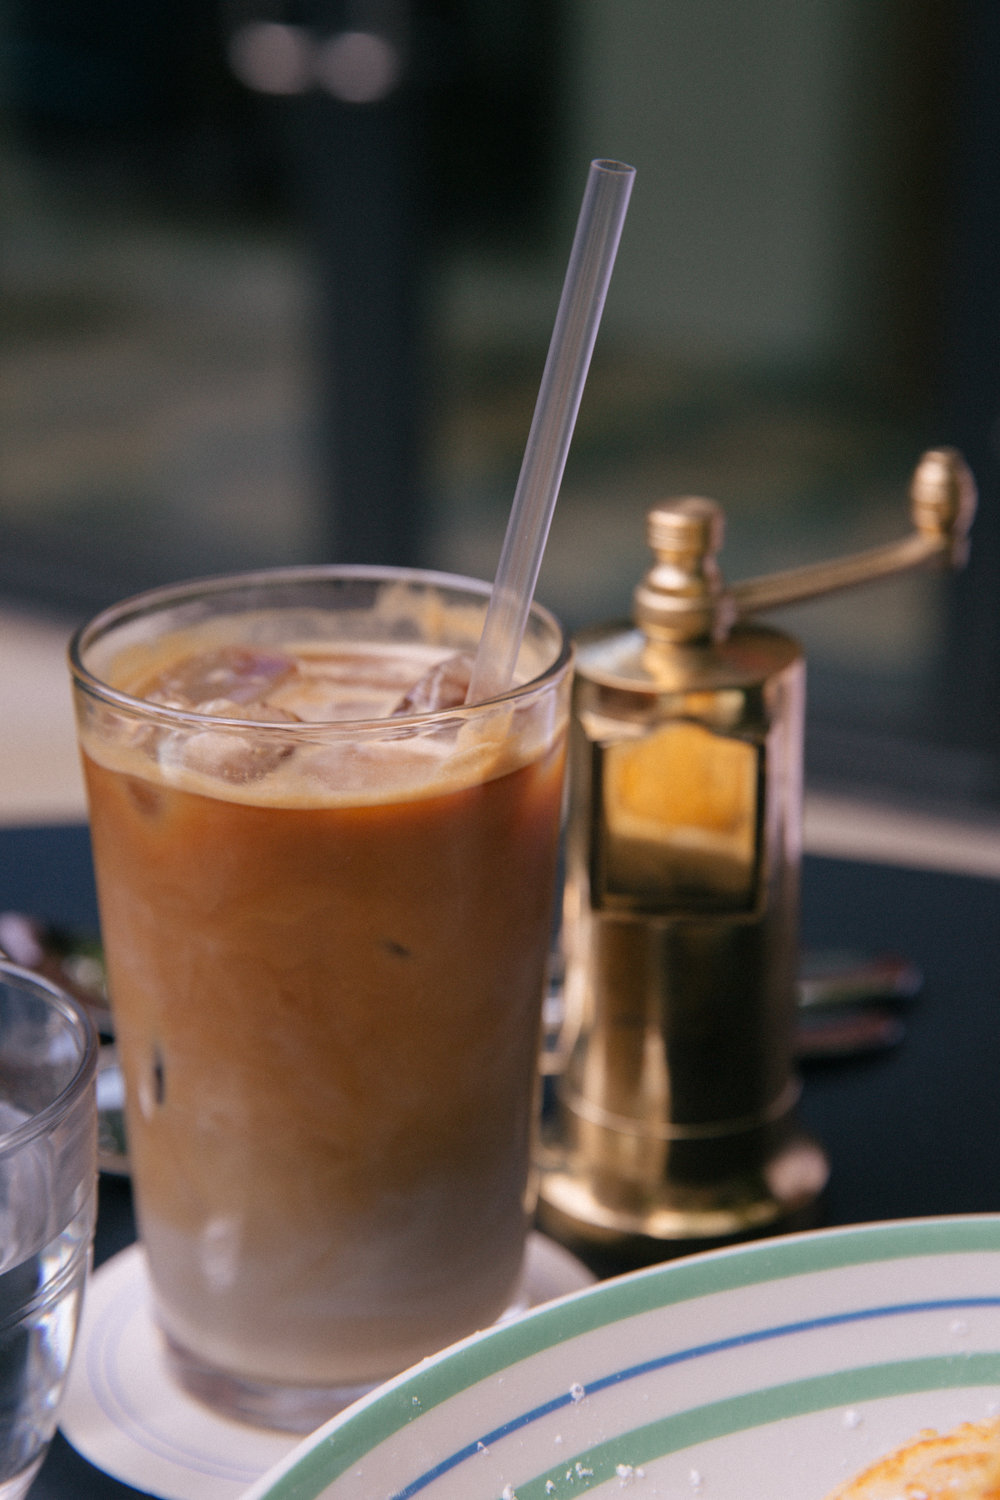 Iced latte of dreams